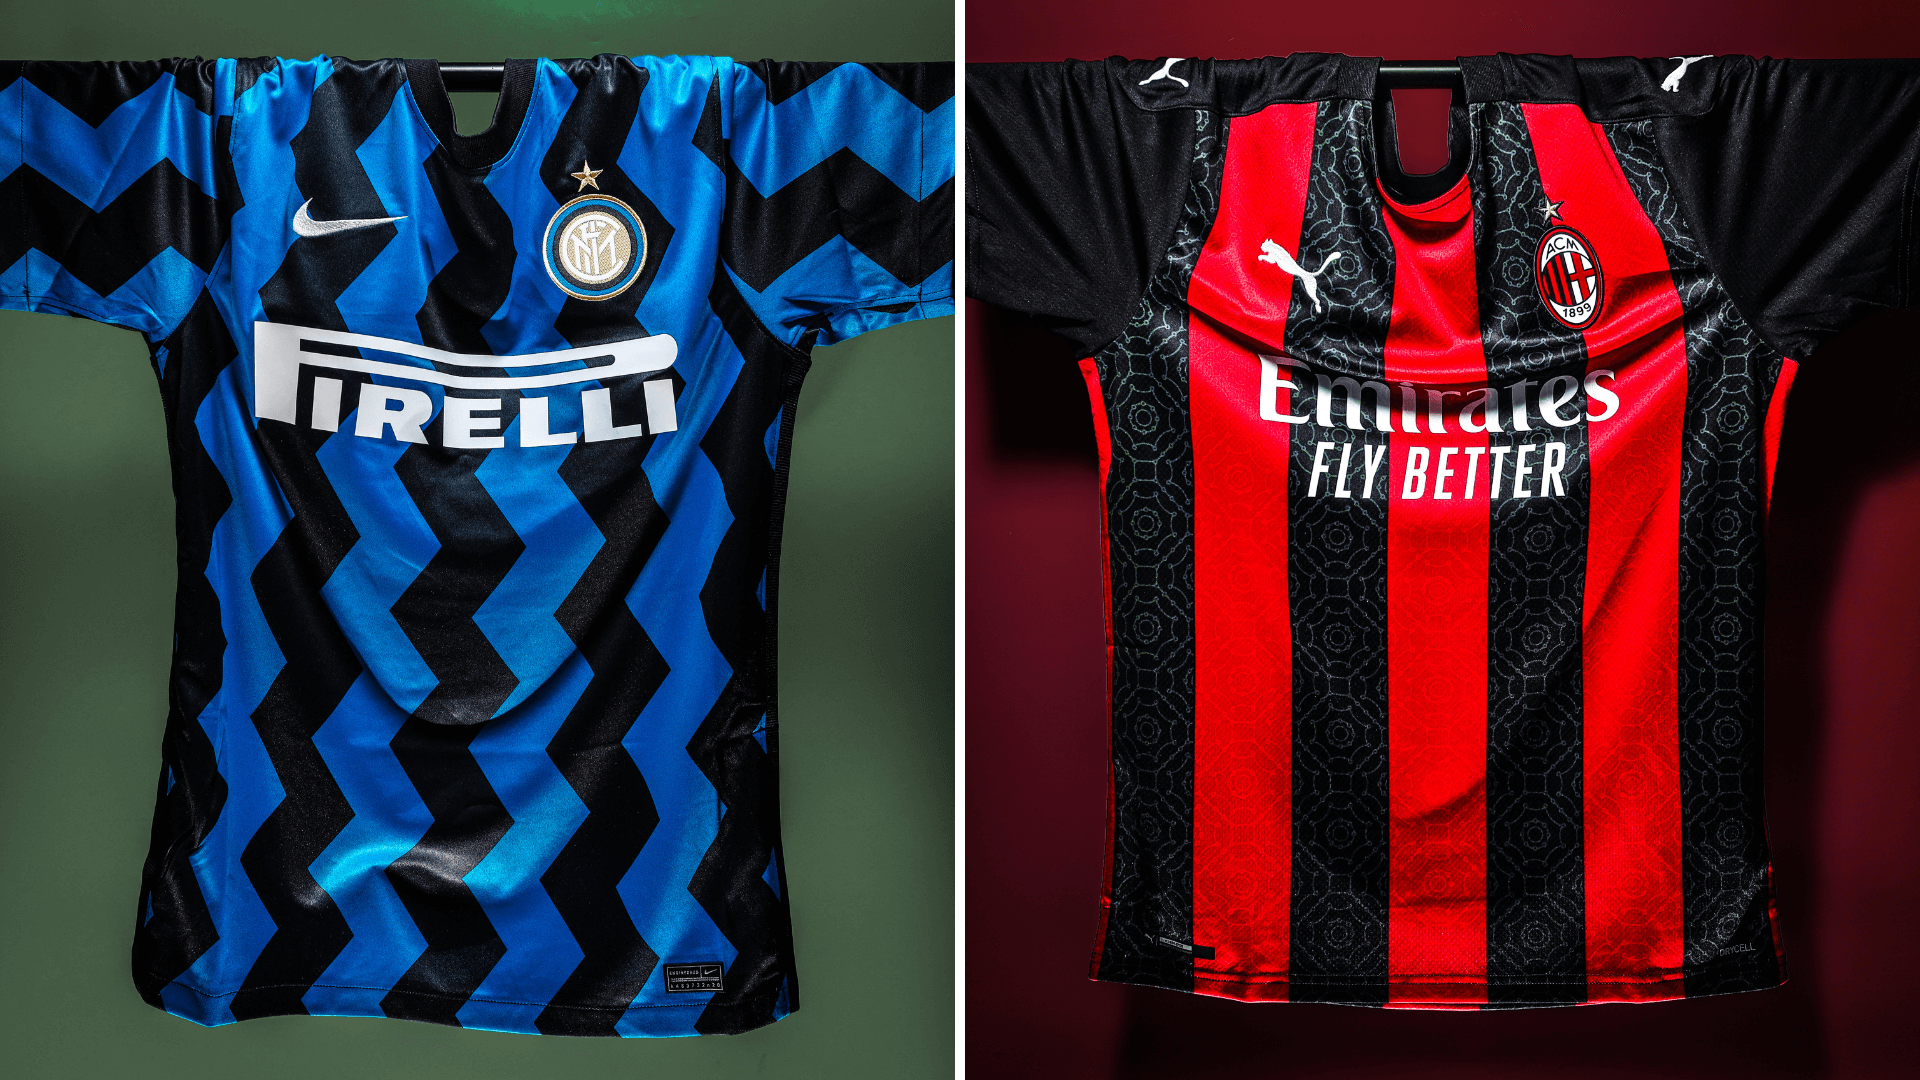 Inter Milan and AC Milan Football Jerseys